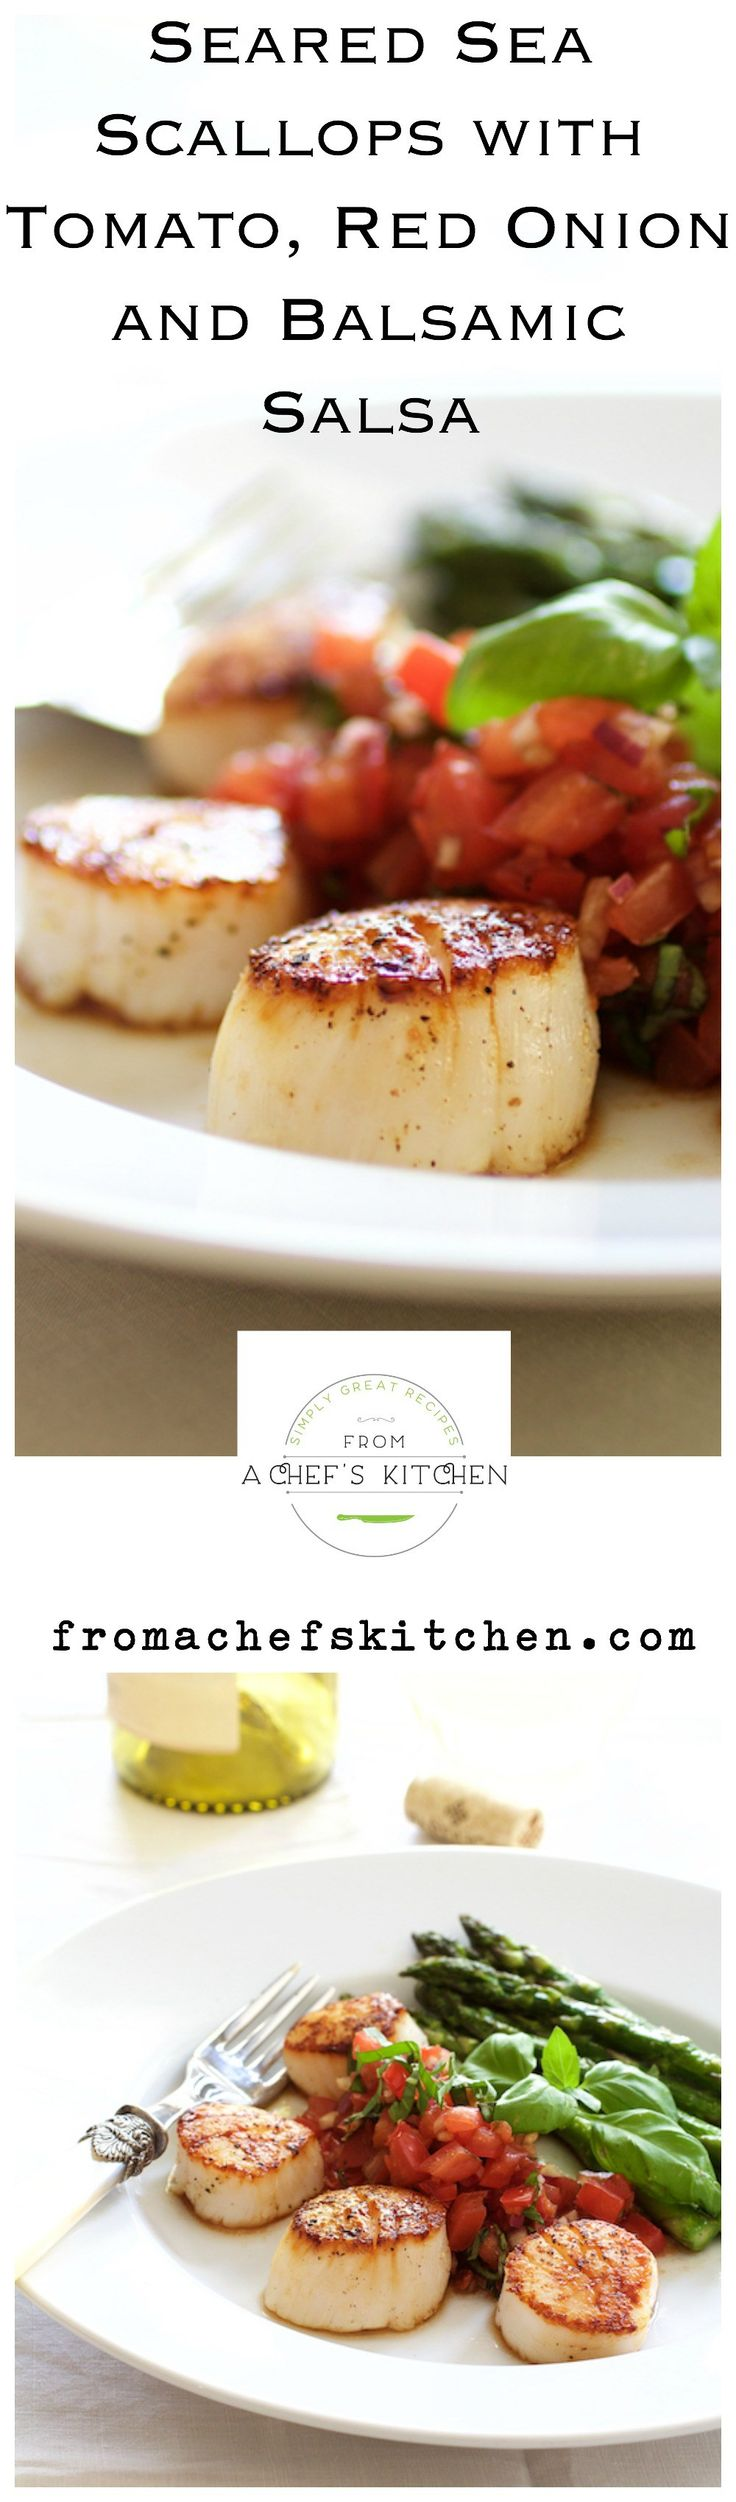 Seared Sea Scallops with Tomato, Red Onion and Balsamic Salsa for a light and elegant dinner for two.  #MySignatureDish #Ad